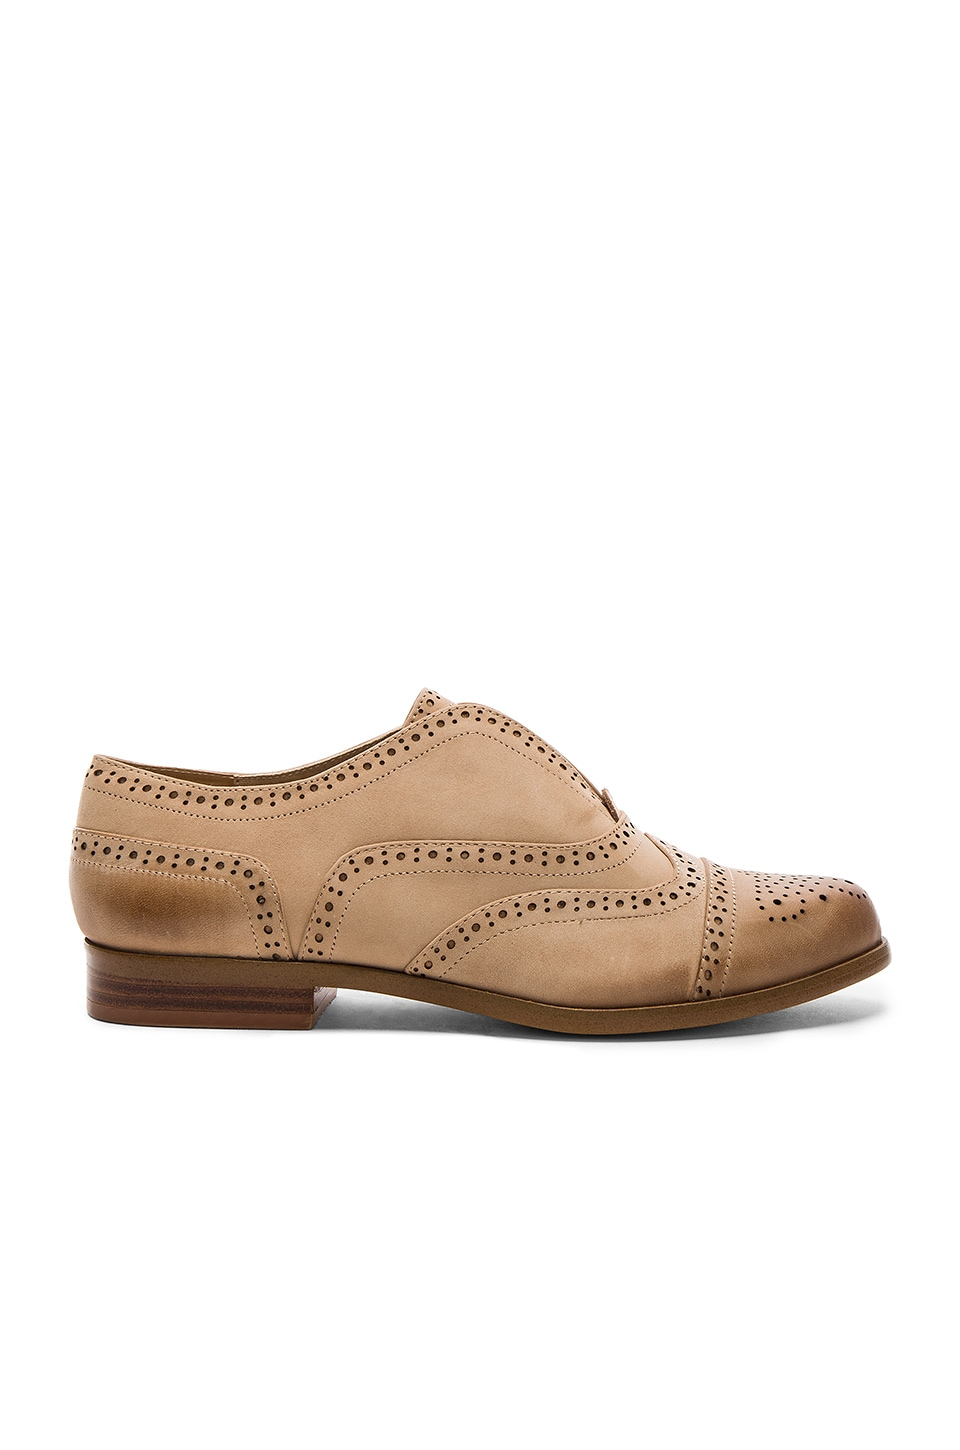 Splendid Tobey Oxford in Nut